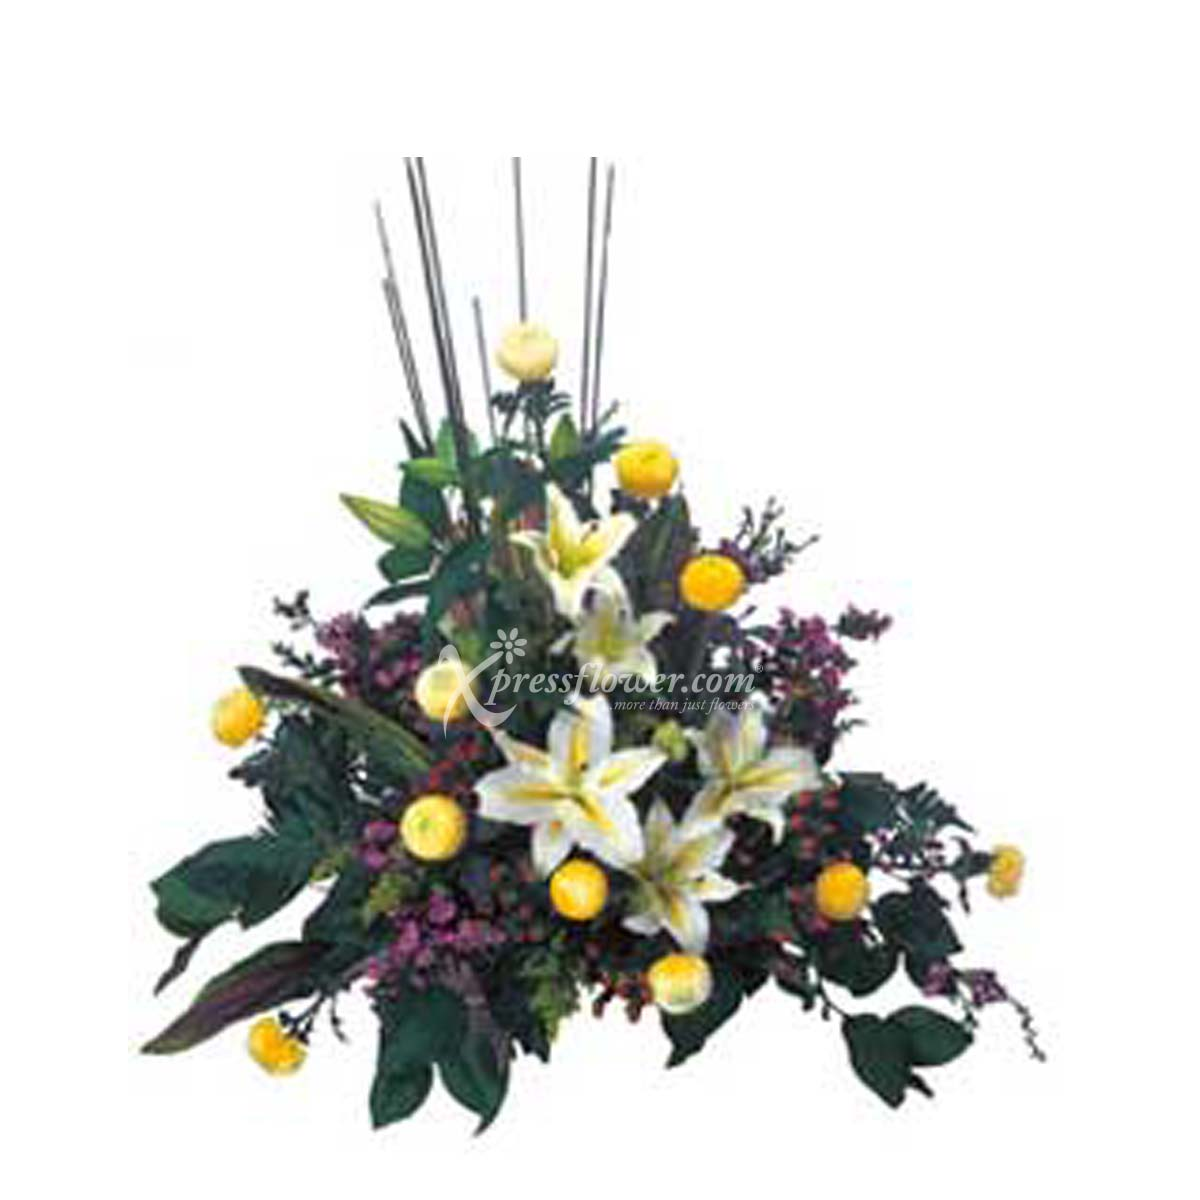 IDCN1801 ARRANGEMENT OF CUT FLOWERS (CN)